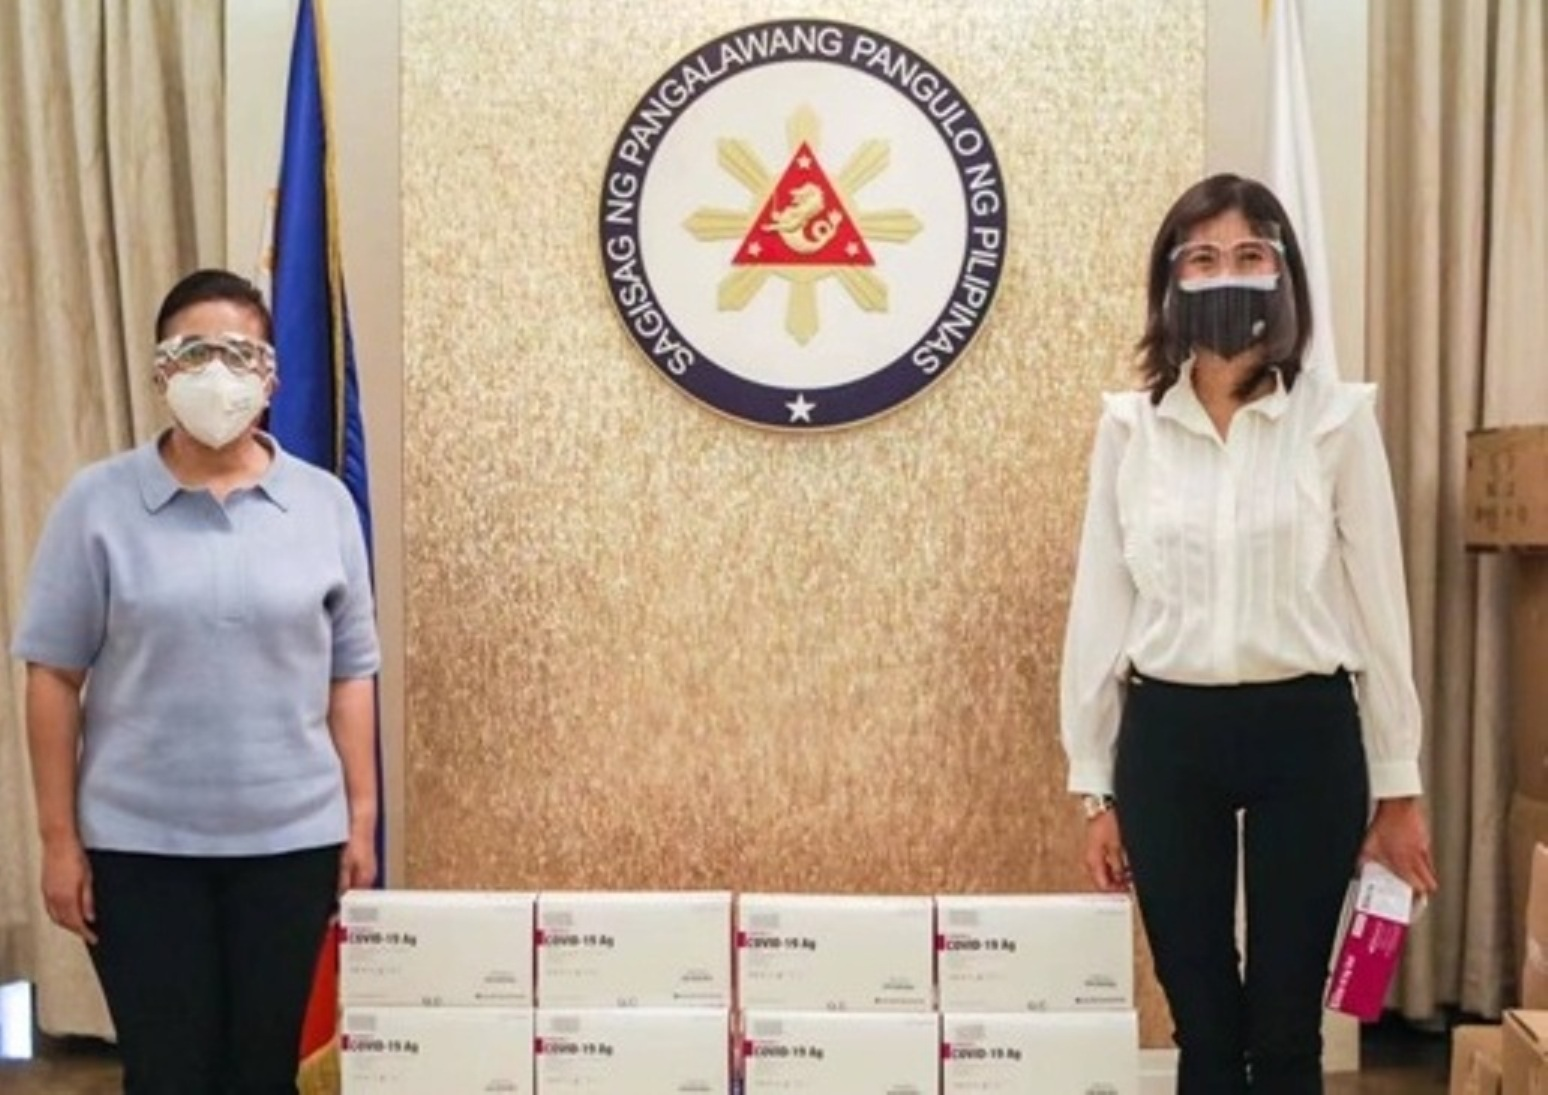 7,500 antigen kits donated to OVP and LGUs